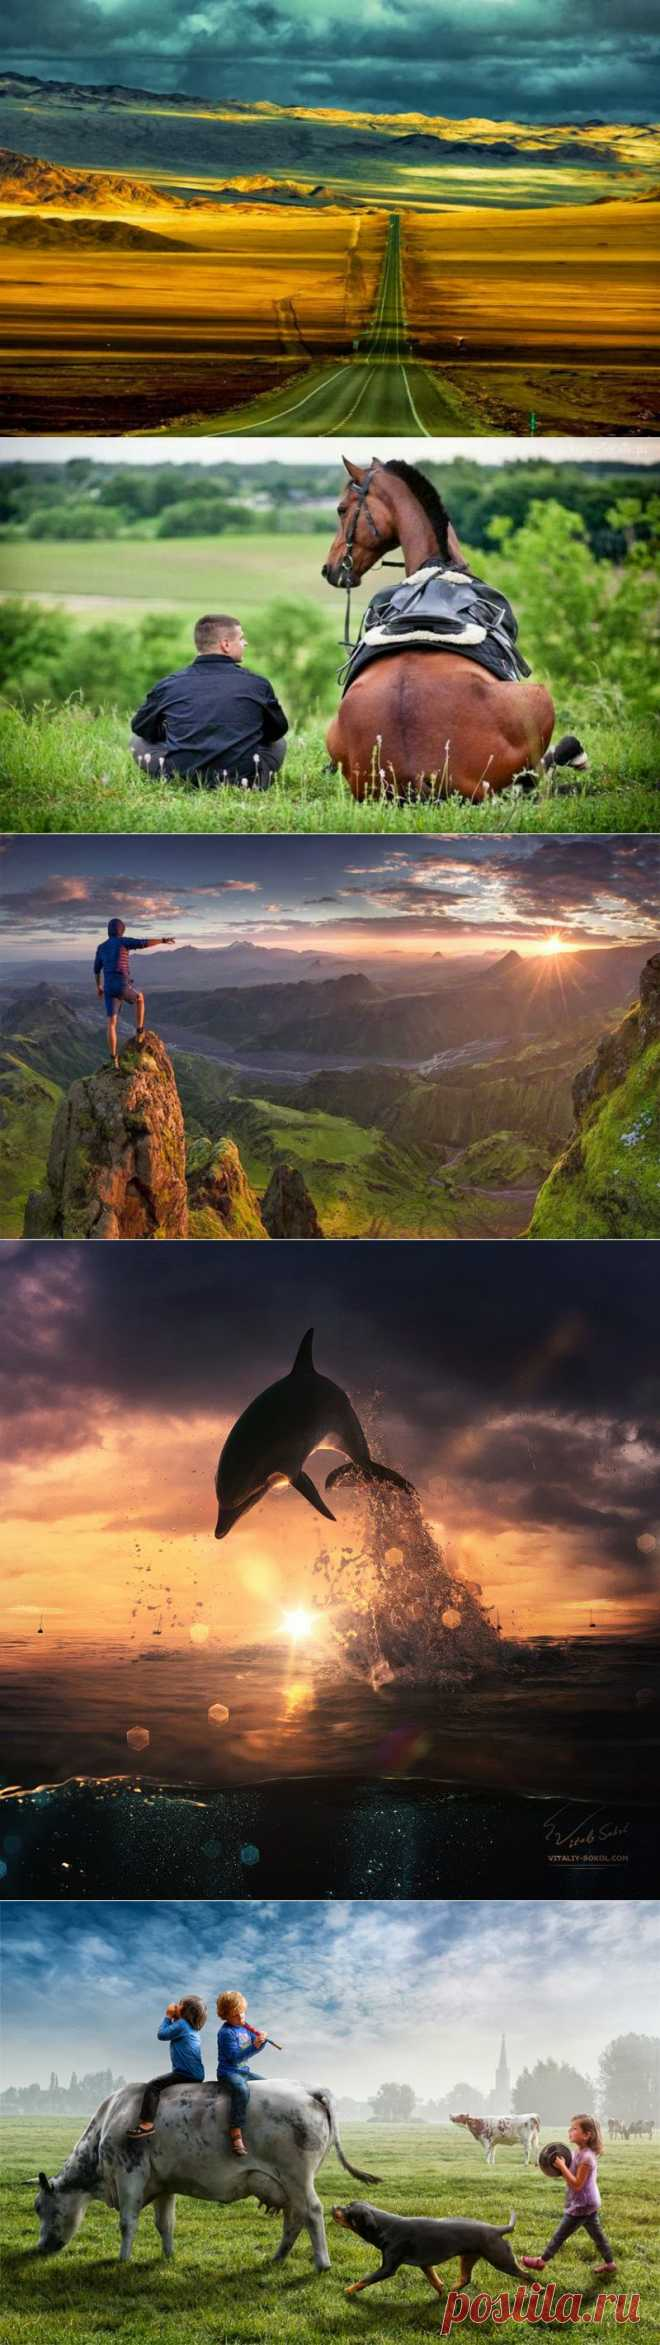 Beautiful World : The Evening Collection of Wonderful and Funny Photos